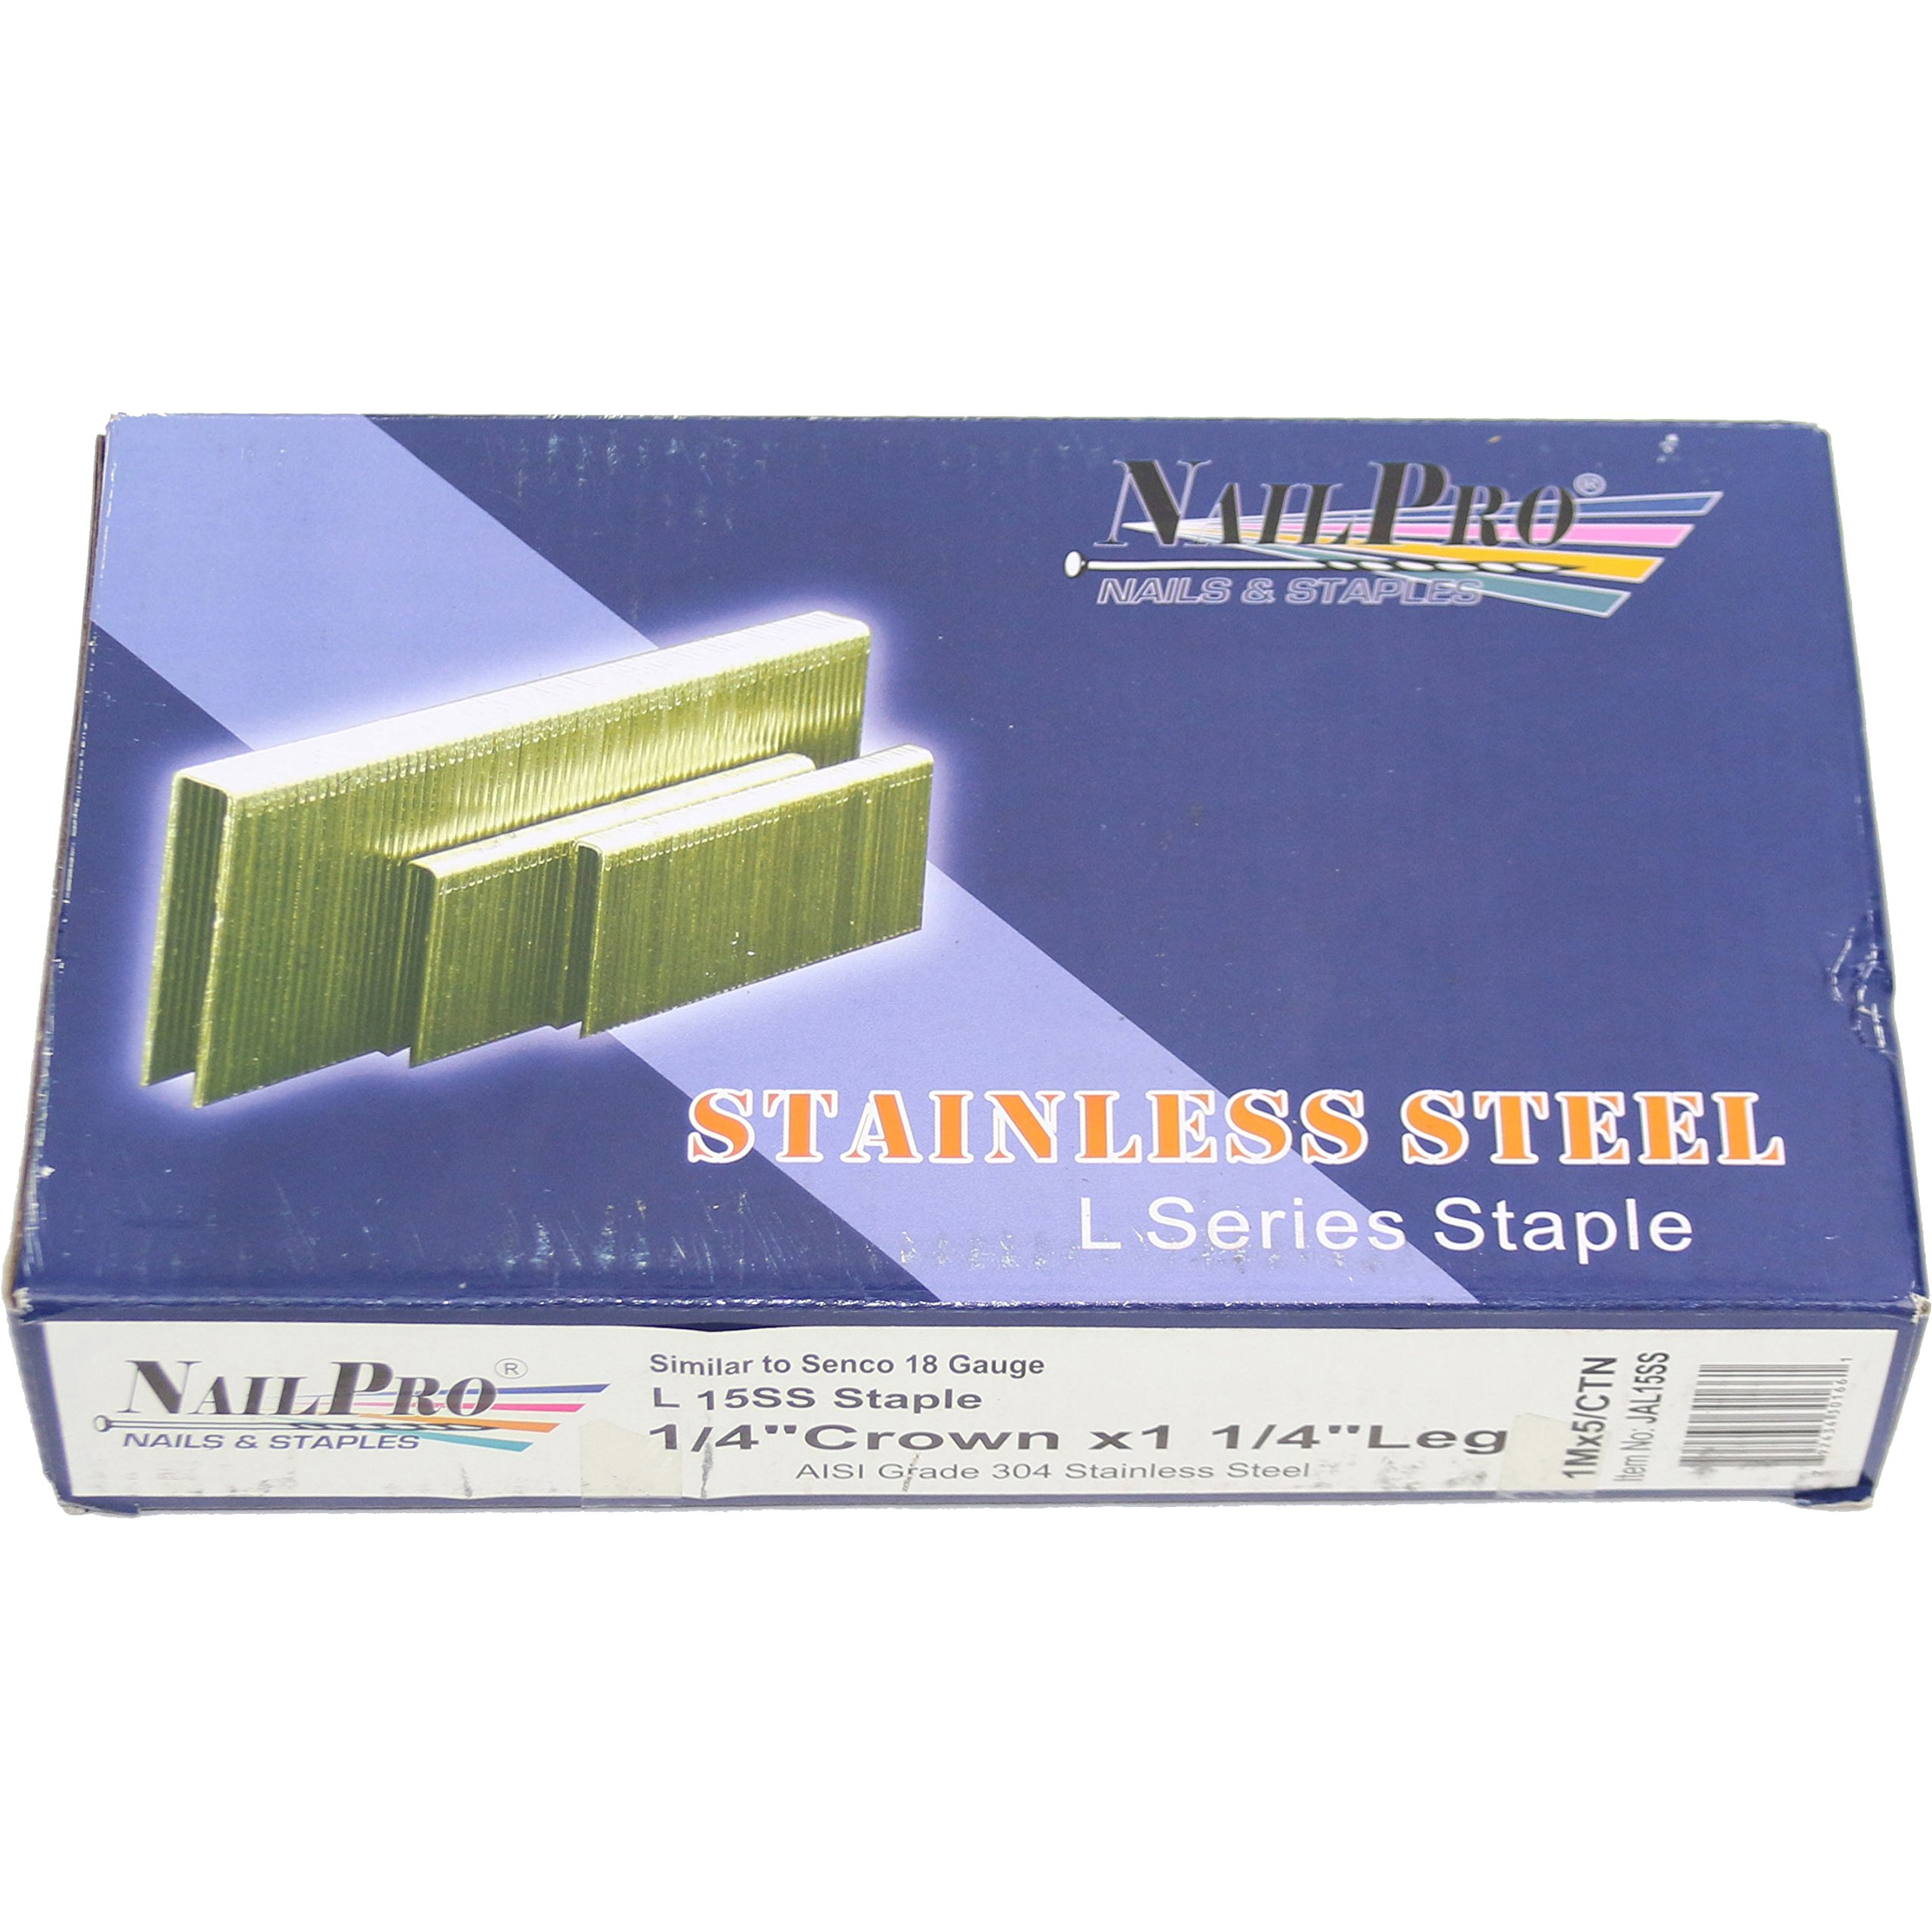 NailPro 1/4'' Crown x 1-1/4'' Leg Stainless Steel - 5,000 pcs. of ''L Series'' Staples - JAL15SS